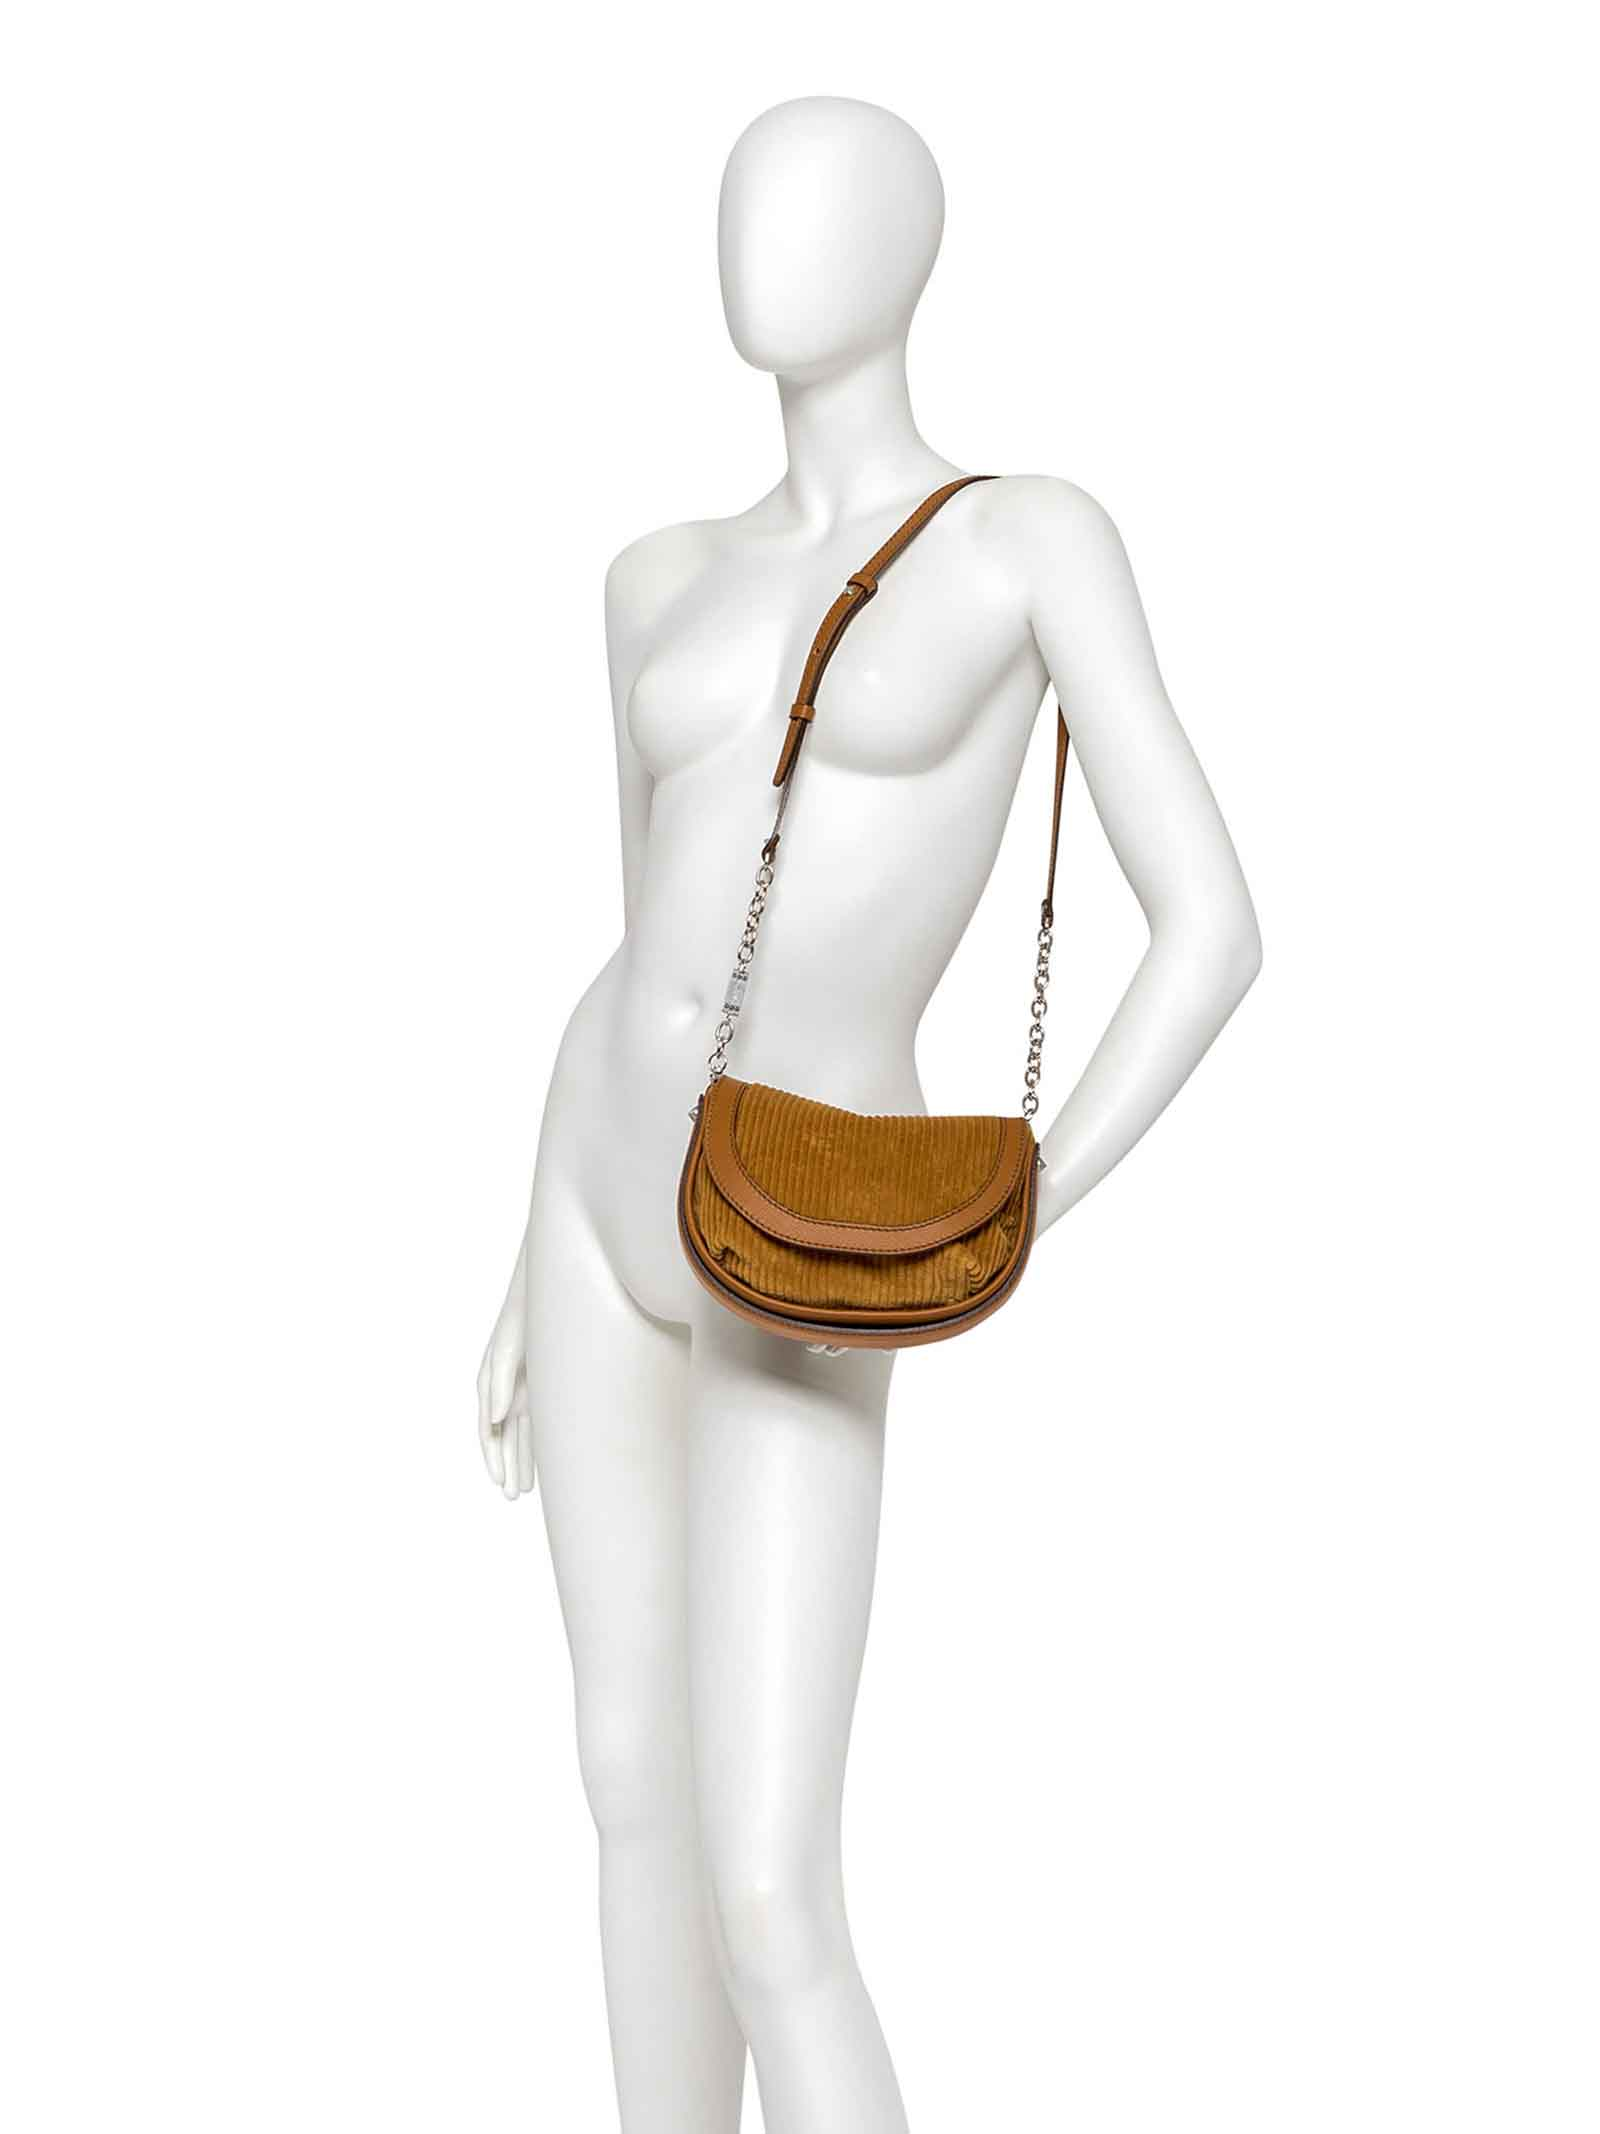 Women's Clutch Bag Diana In Velvet And Tan Leather With Adjustable and Detachable Leather Cross-body Strap in Matching Color Gianni Chiarini | Bags and backpacks | BS839511130